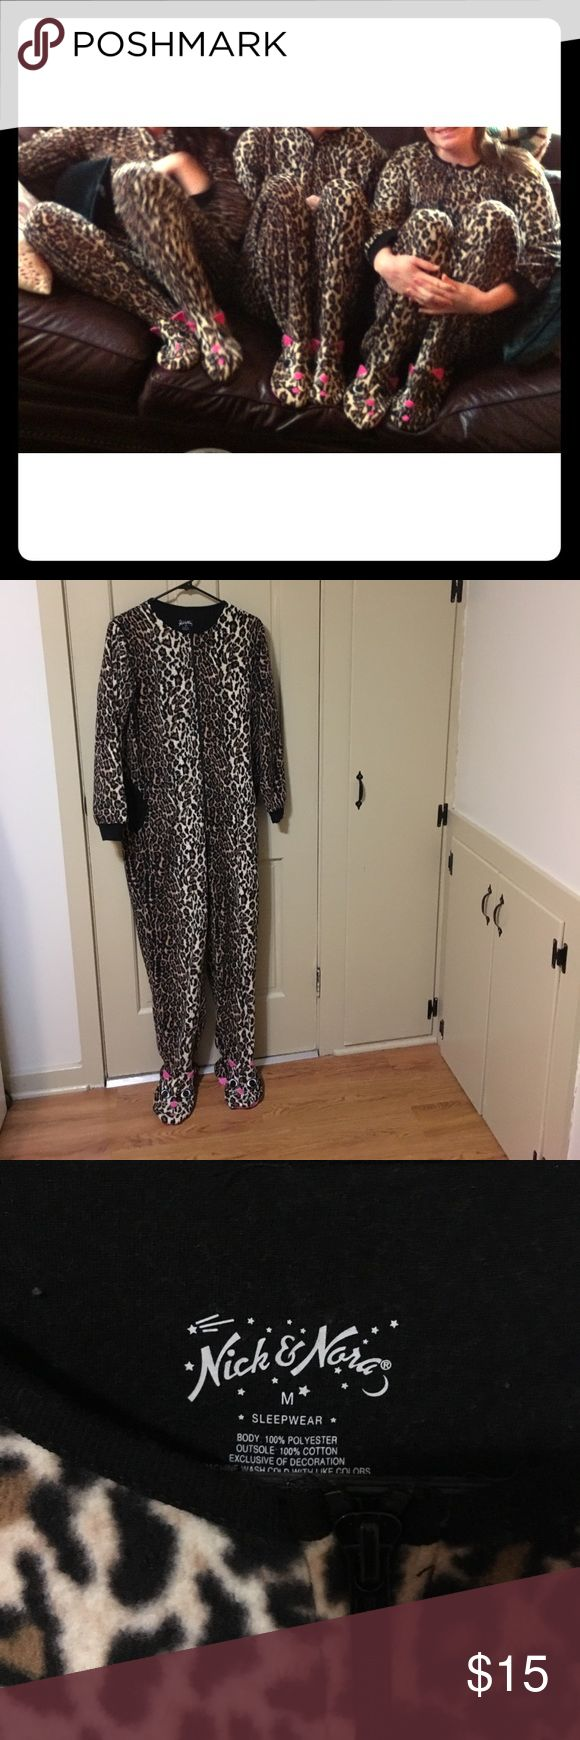 Nick and Nora Women's Footed PJ's Leopard Print Super cute fleece pj's worn once for Christmas morning! Great for lounging or you could even use for Halloween! Nick & Nora Intimates & Sleepwear Pajamas